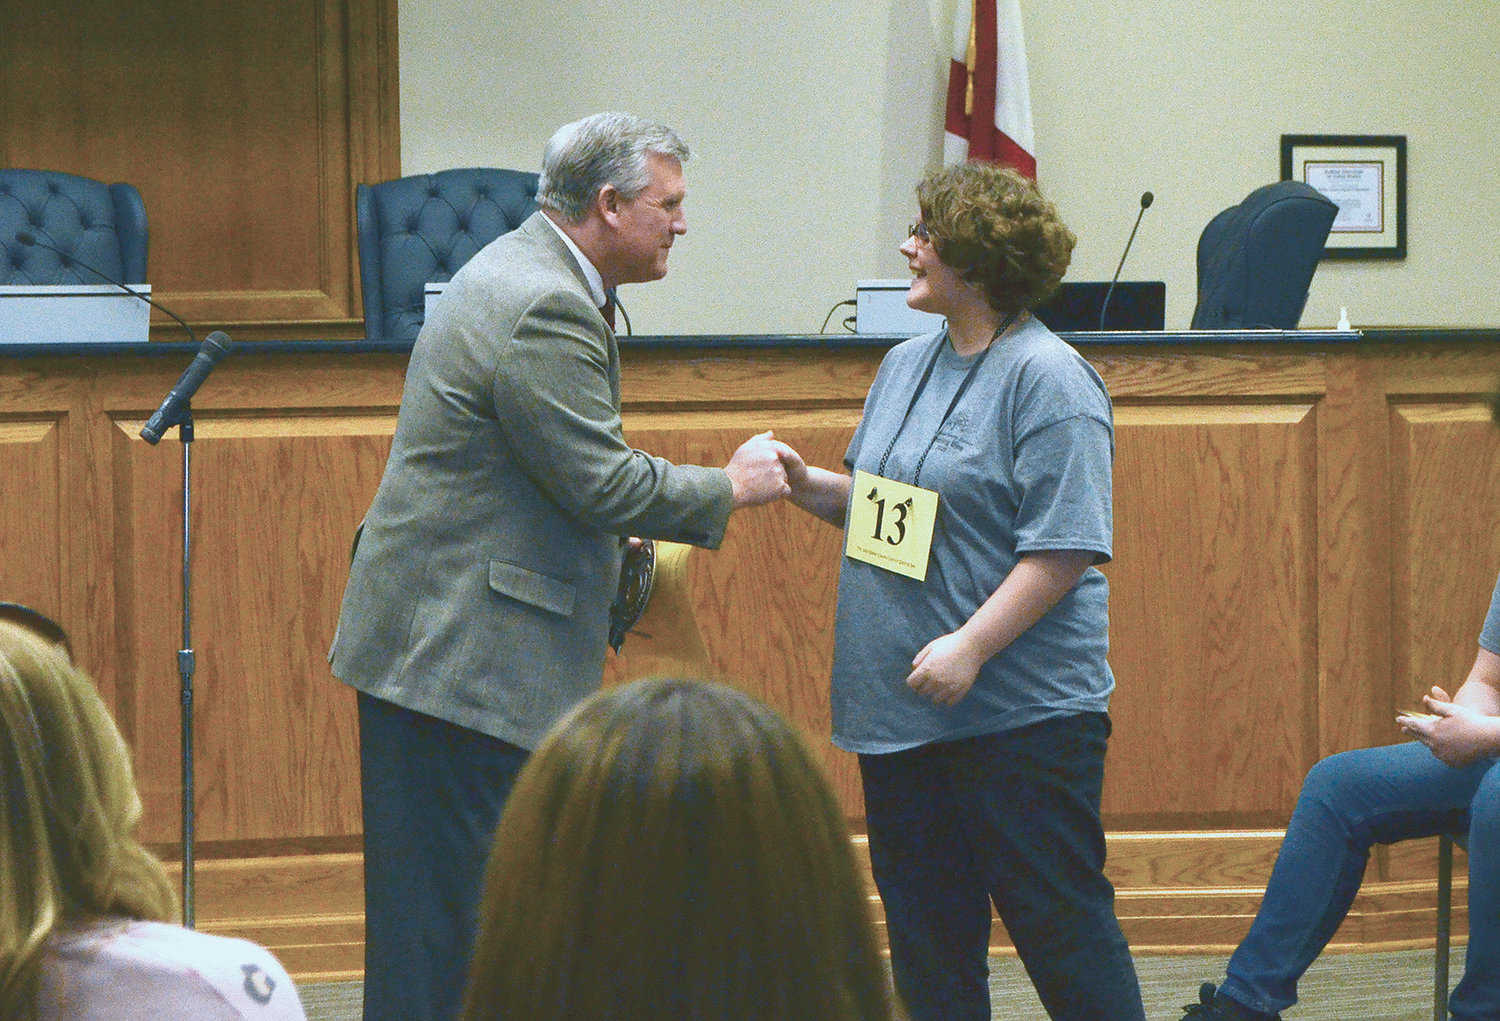 Valley Jr. High School student Annaleigh Tubbs is congratulated by Walker County Schools Superintendent Dr. Joel Hagood for winning the Walker County District Spelling Bee.